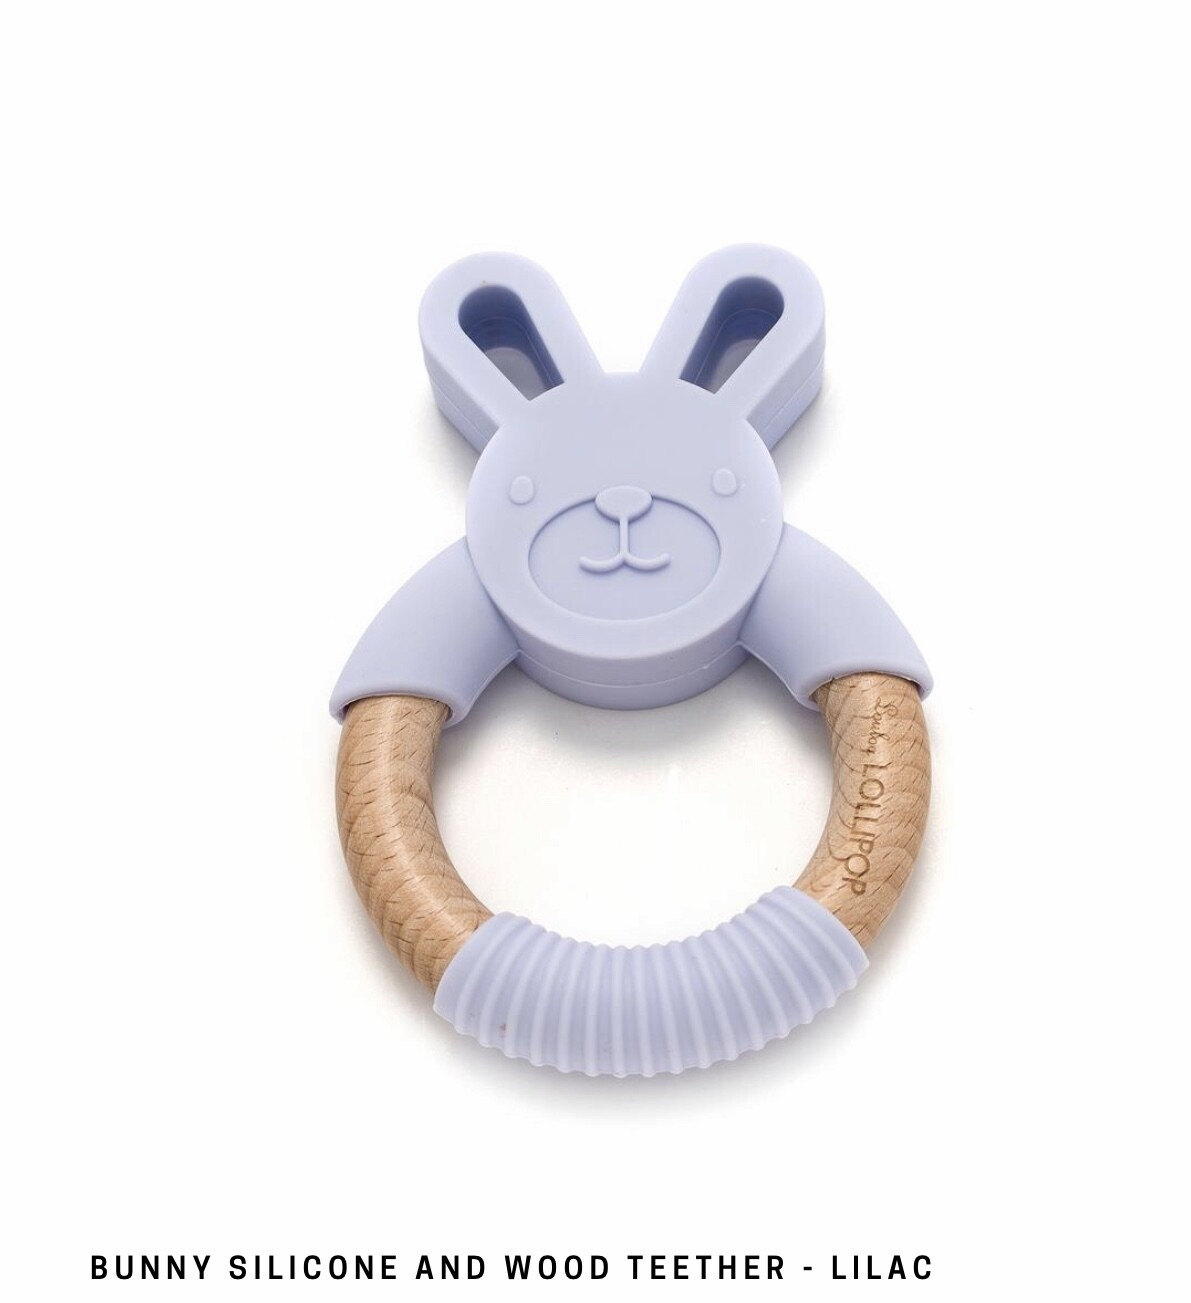 Bunny Silicone & Wood Teether - Lilac